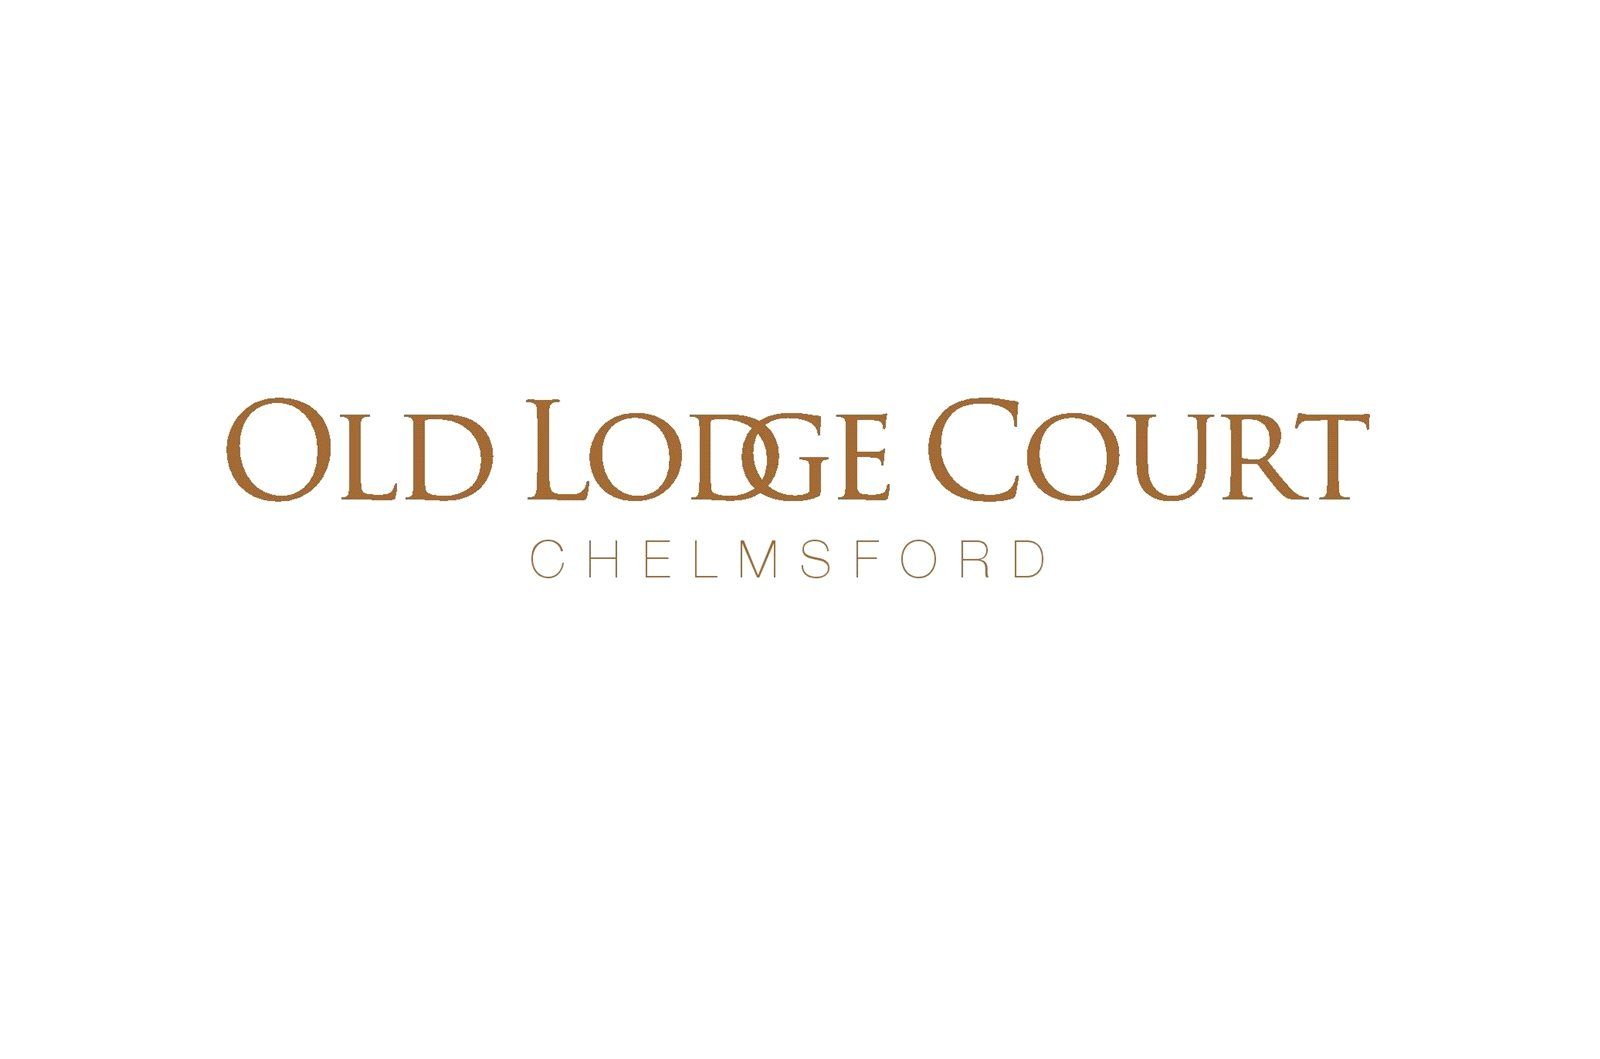 Old Lodge Court